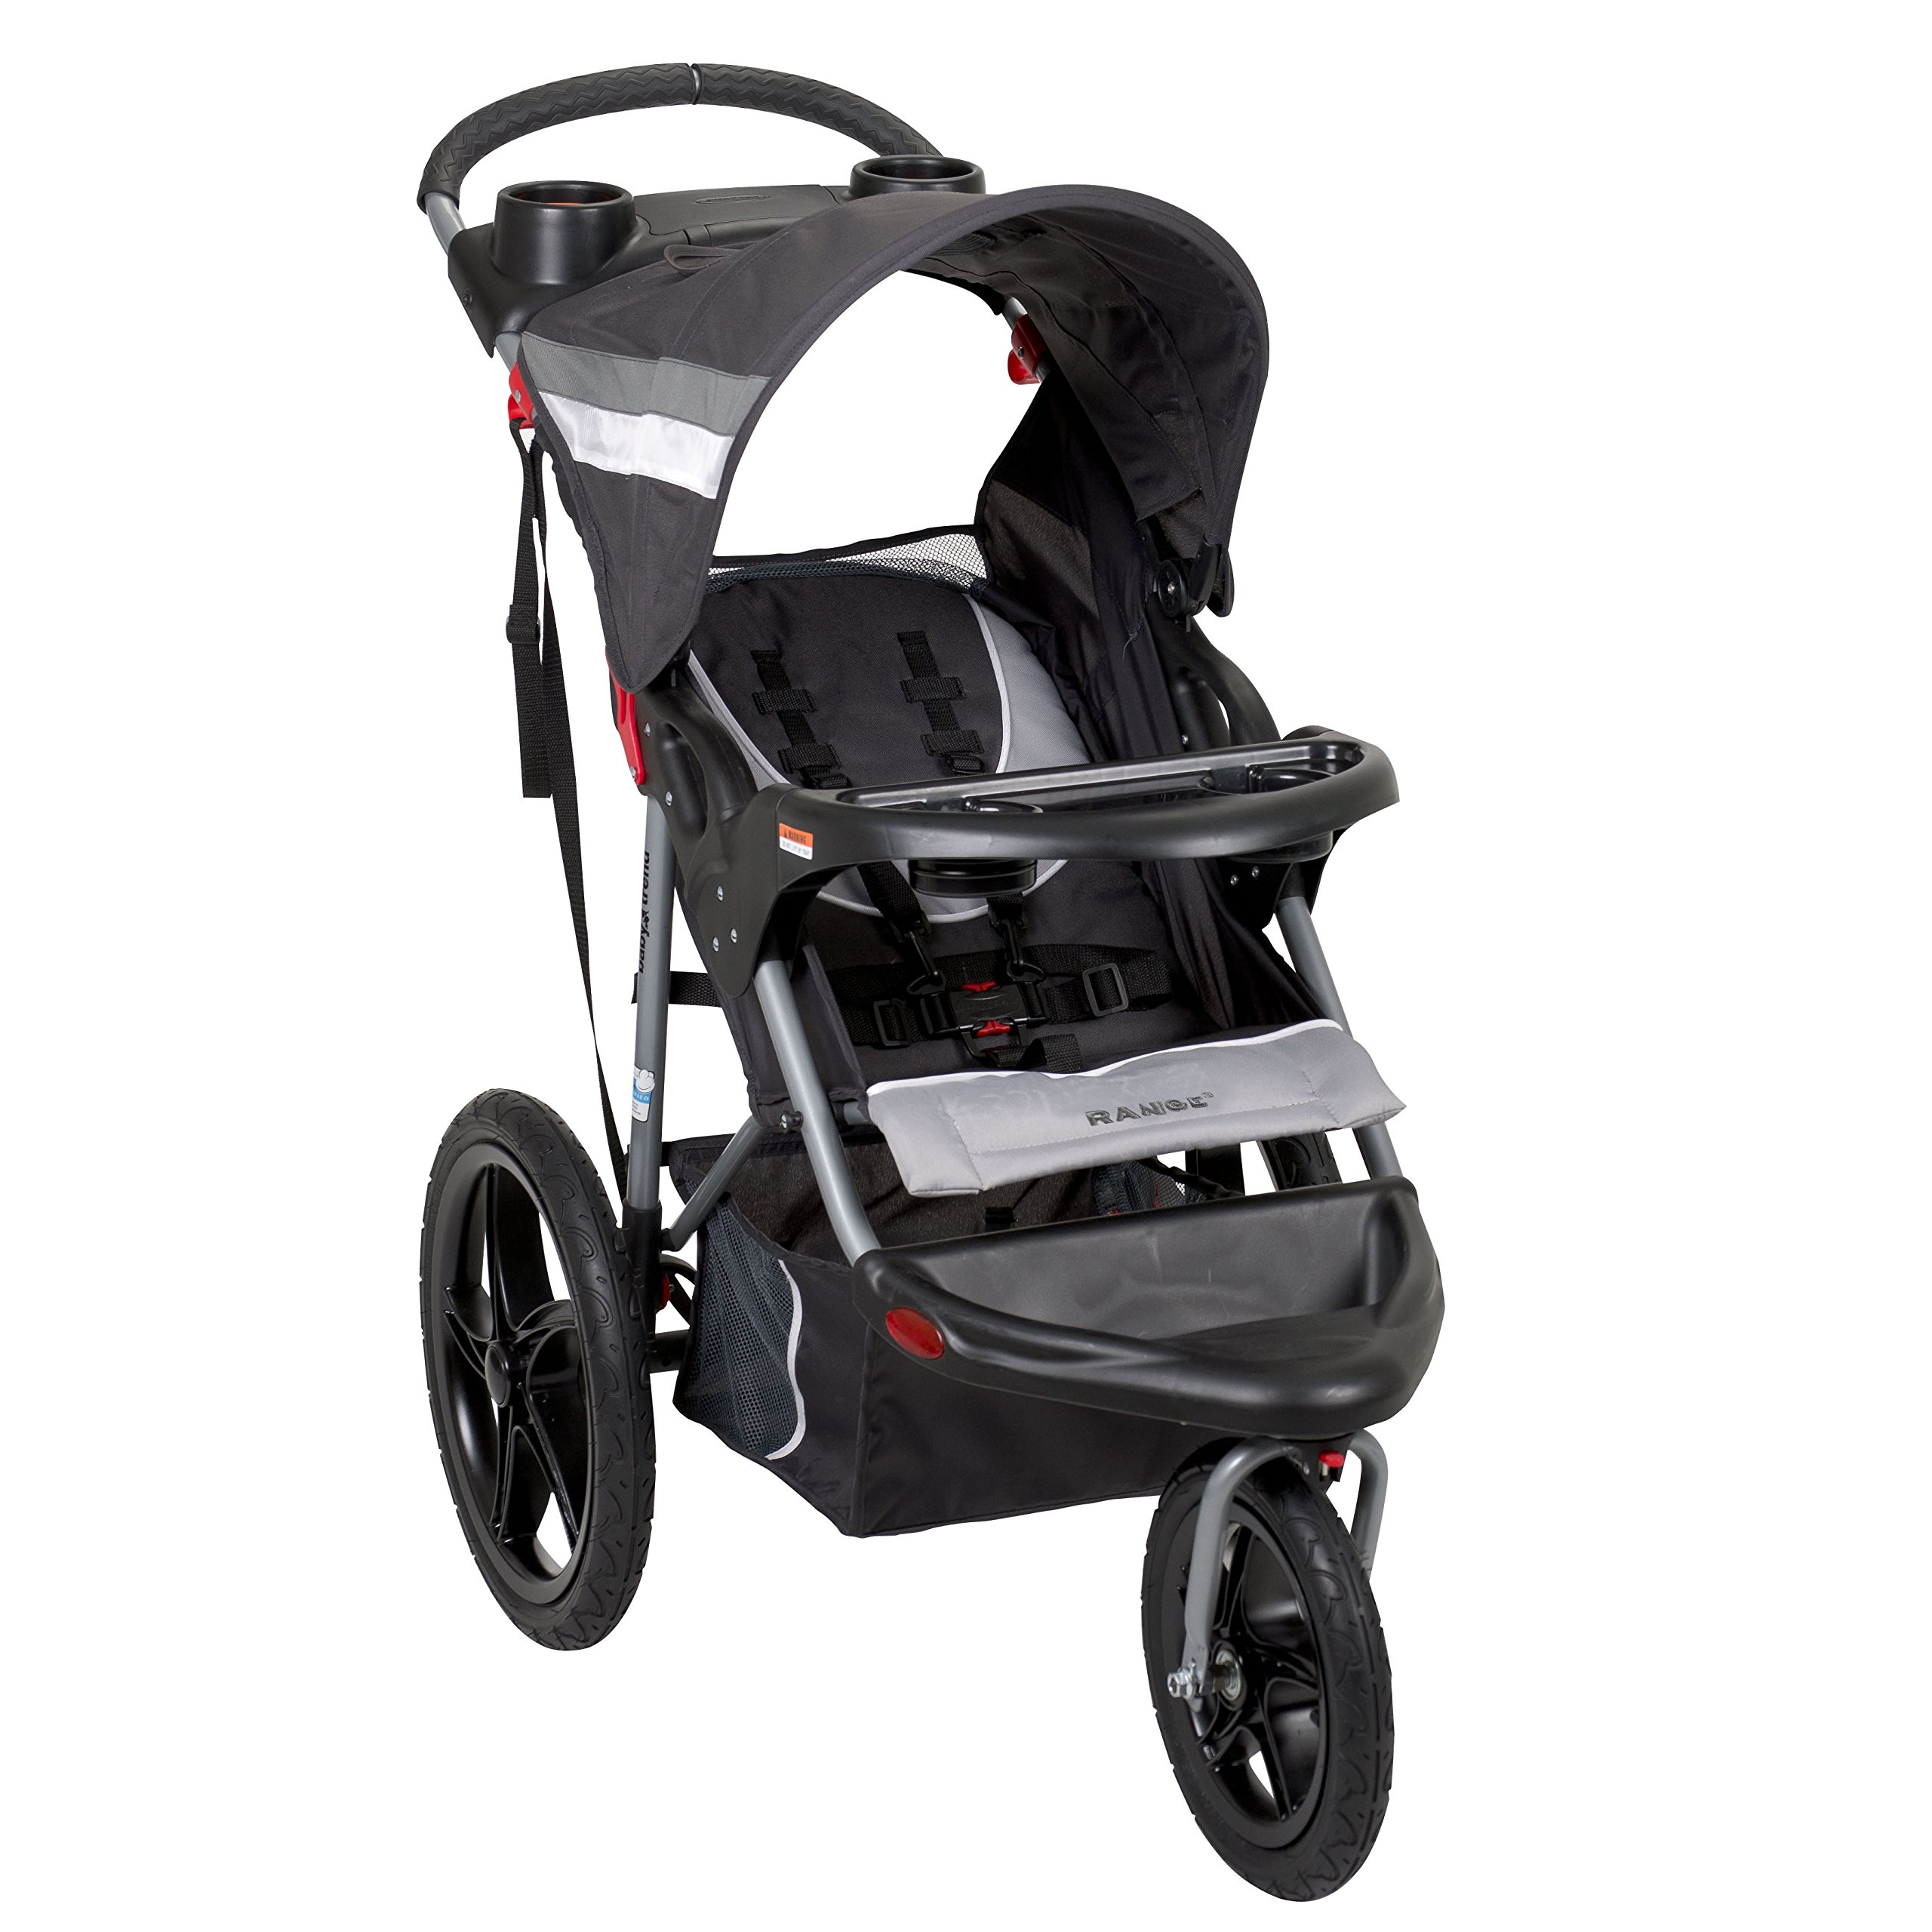 Baby Trend Range Jogging Stroller, Liberty by Baby Trend (Image #1)